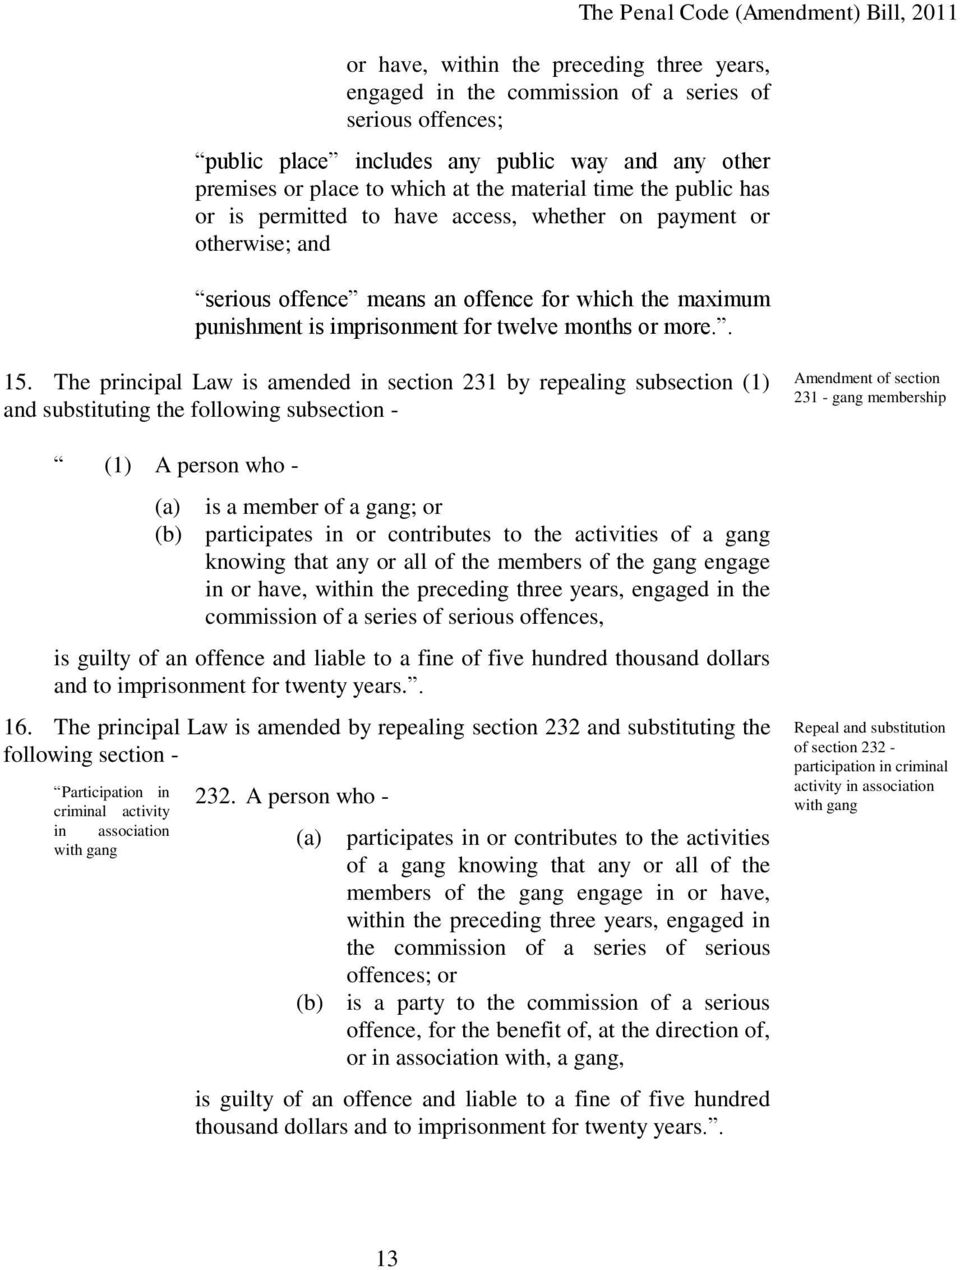 . 15. The principal Law is amended in section 231 by repealing subsection (1) and substituting the following subsection - (1) A person who - (a) is a member of a gang; or (b) participates in or